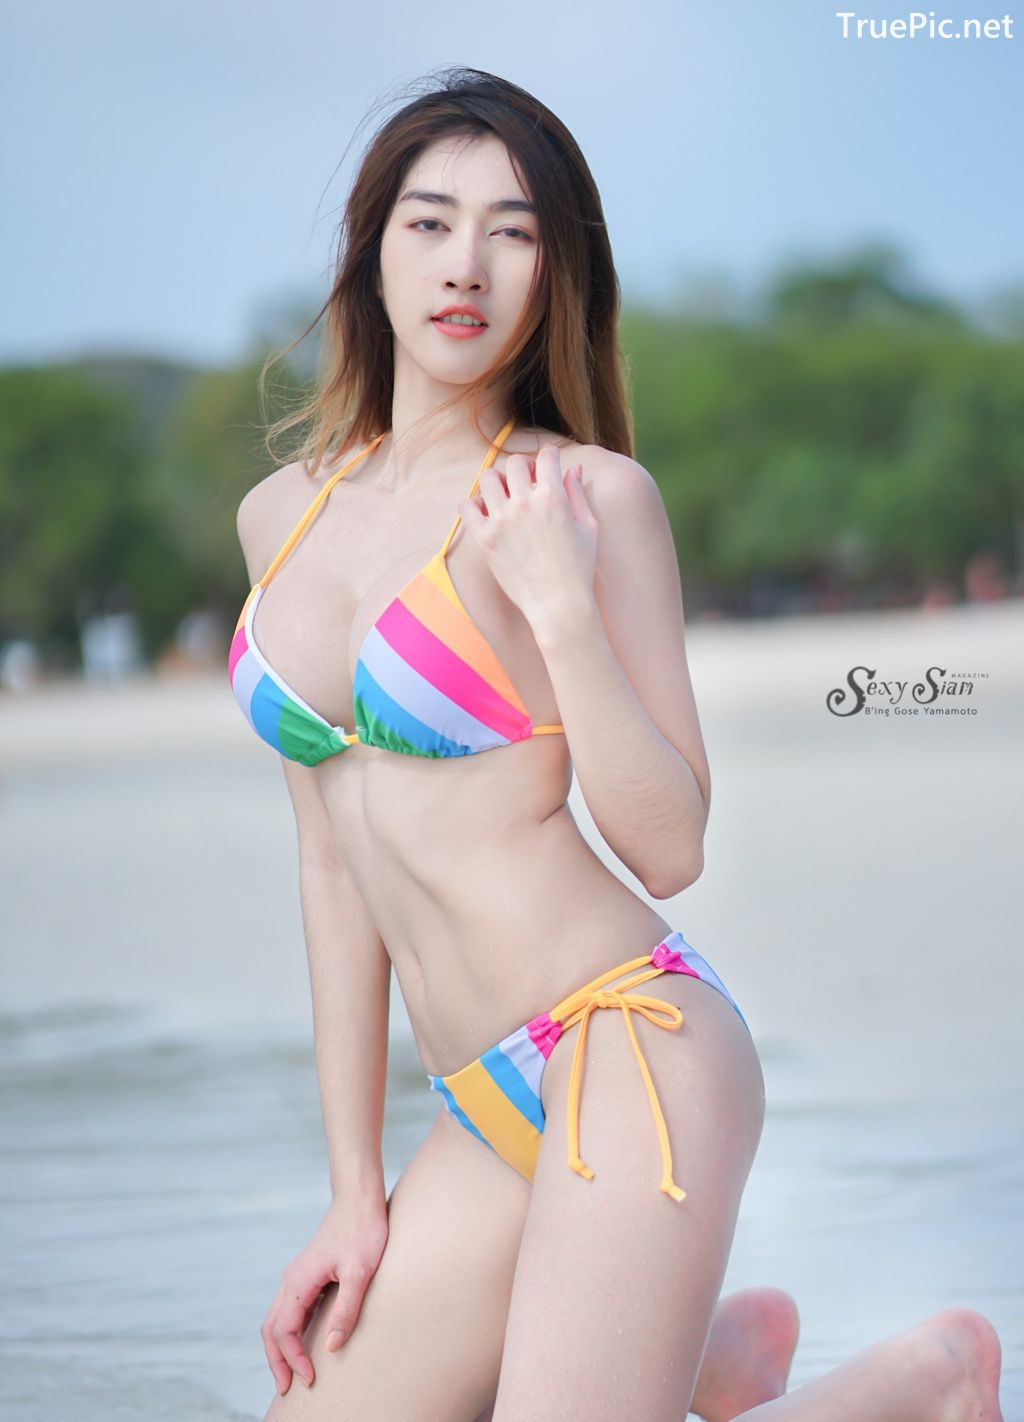 Image-Thailand-Hot-Model-Nisa-Khamarat-Bikini-For-Songkran-Festival-TruePic.net- Picture-4